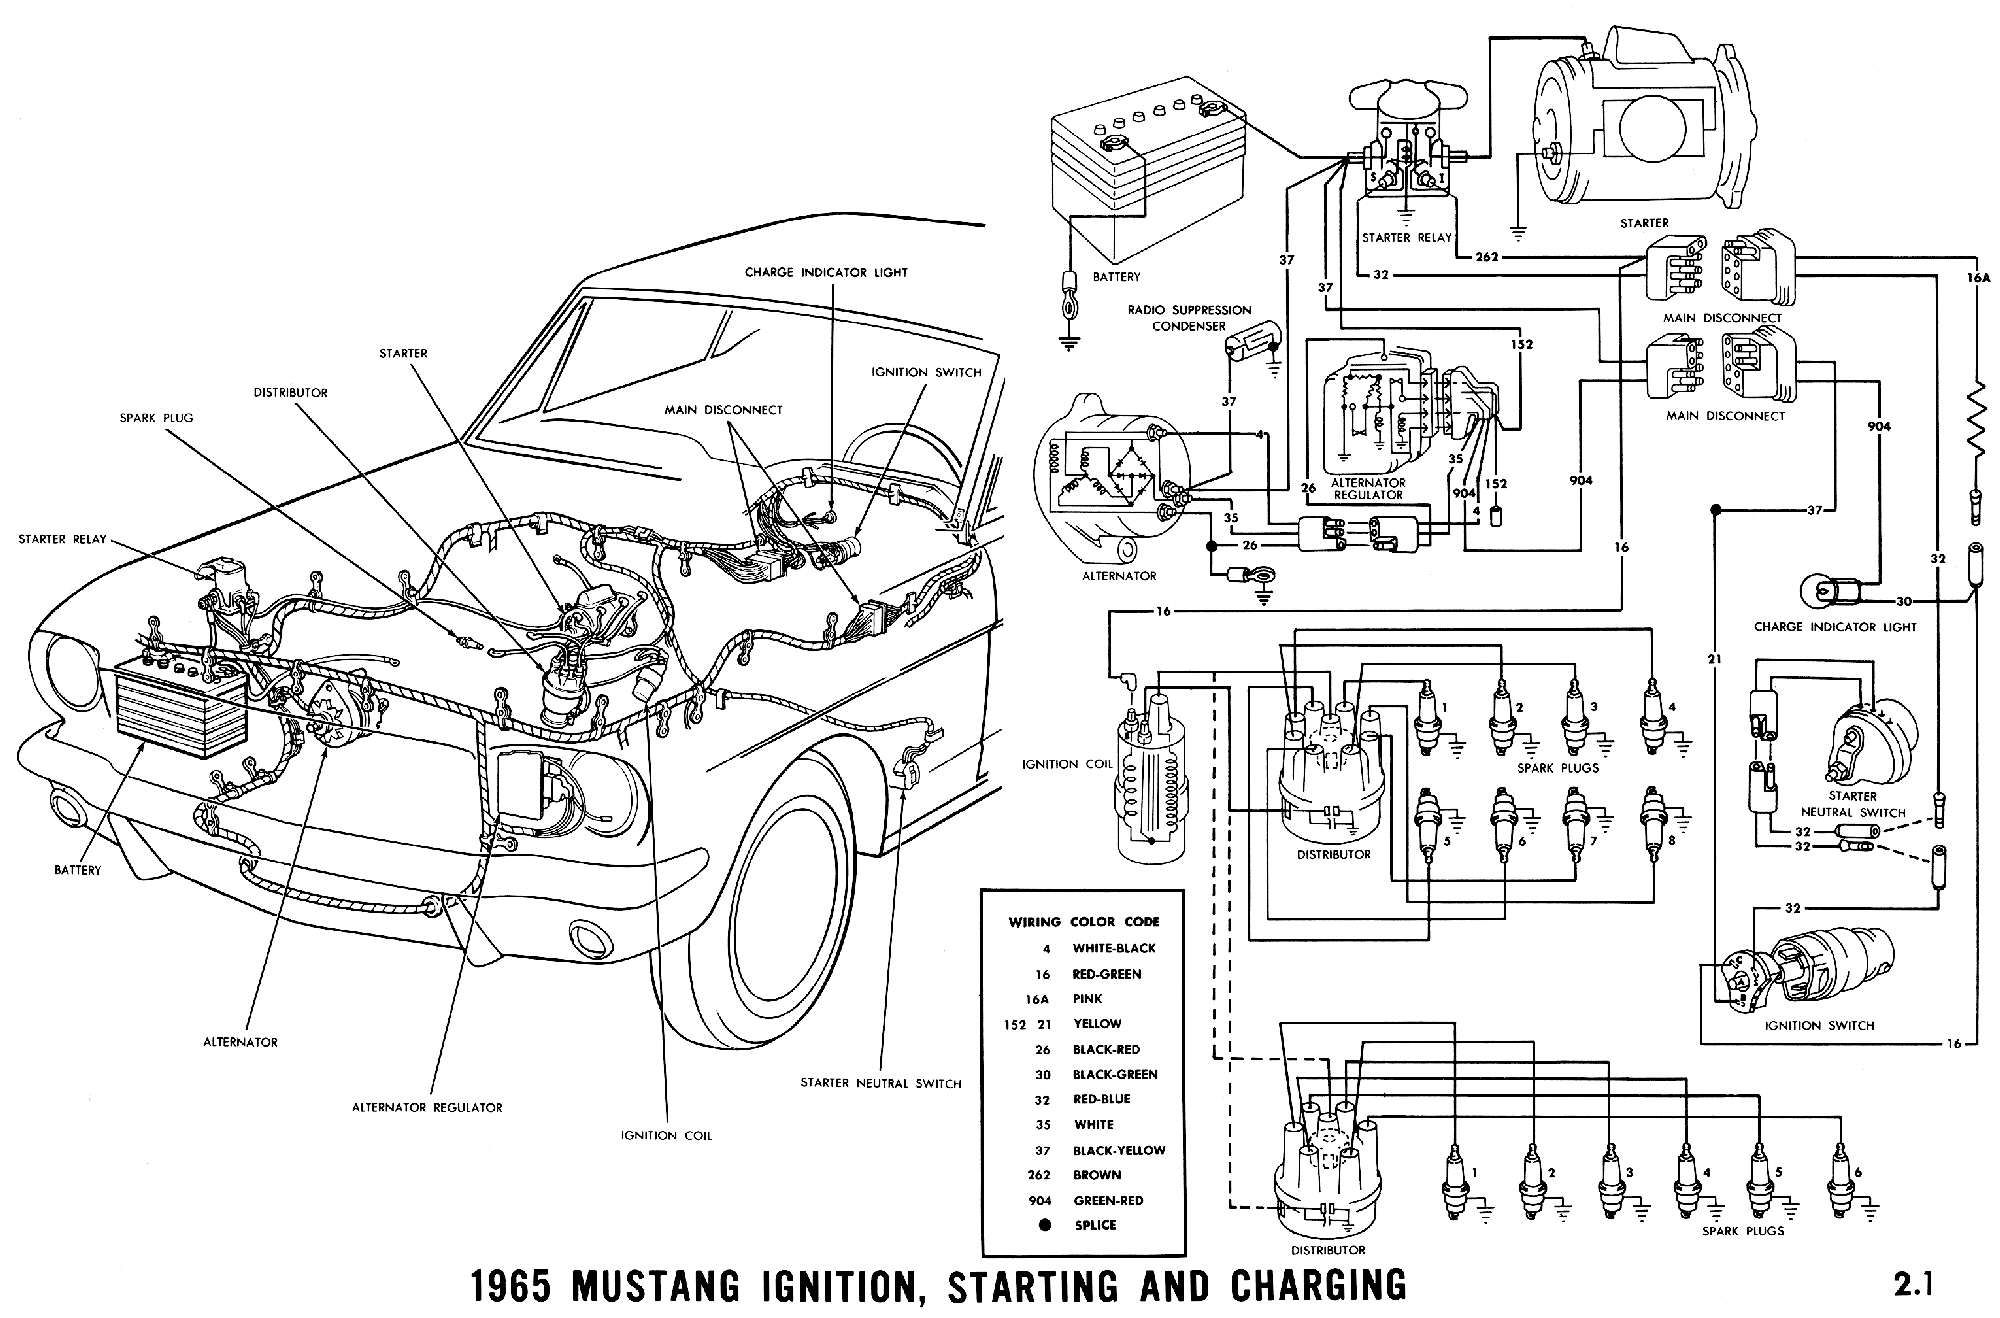 2b4c8d3809962afcbebfb7e8a60704ce 1965 mustang wiring diagrams average joe restoration mustang Ford Alternator Wiring Diagram at nearapp.co